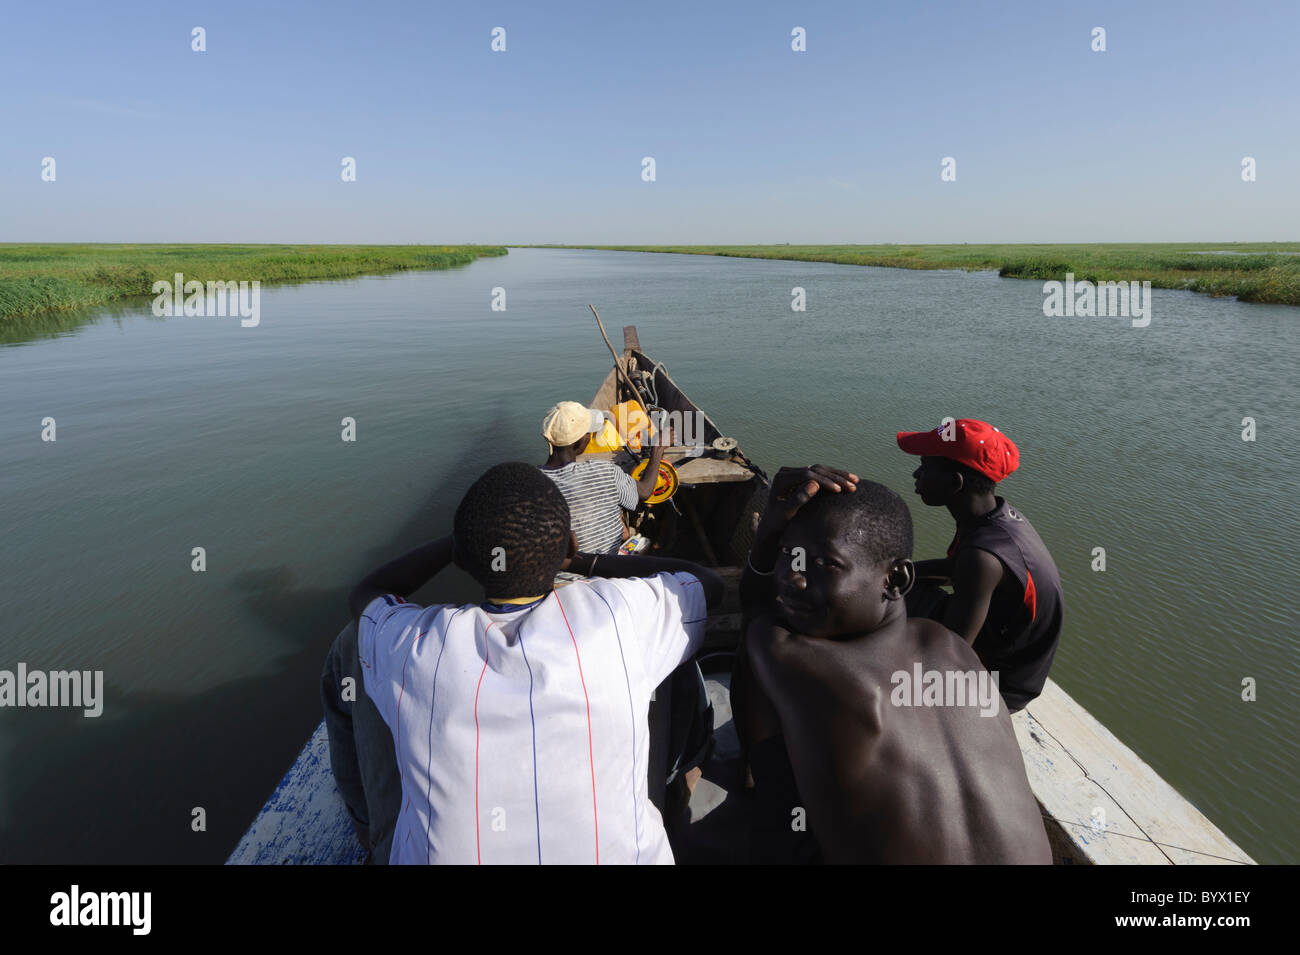 Passengers and steersman sitting on the front side of a pinasse, cruising the Niger Inland Delta. Mali. - Stock Image